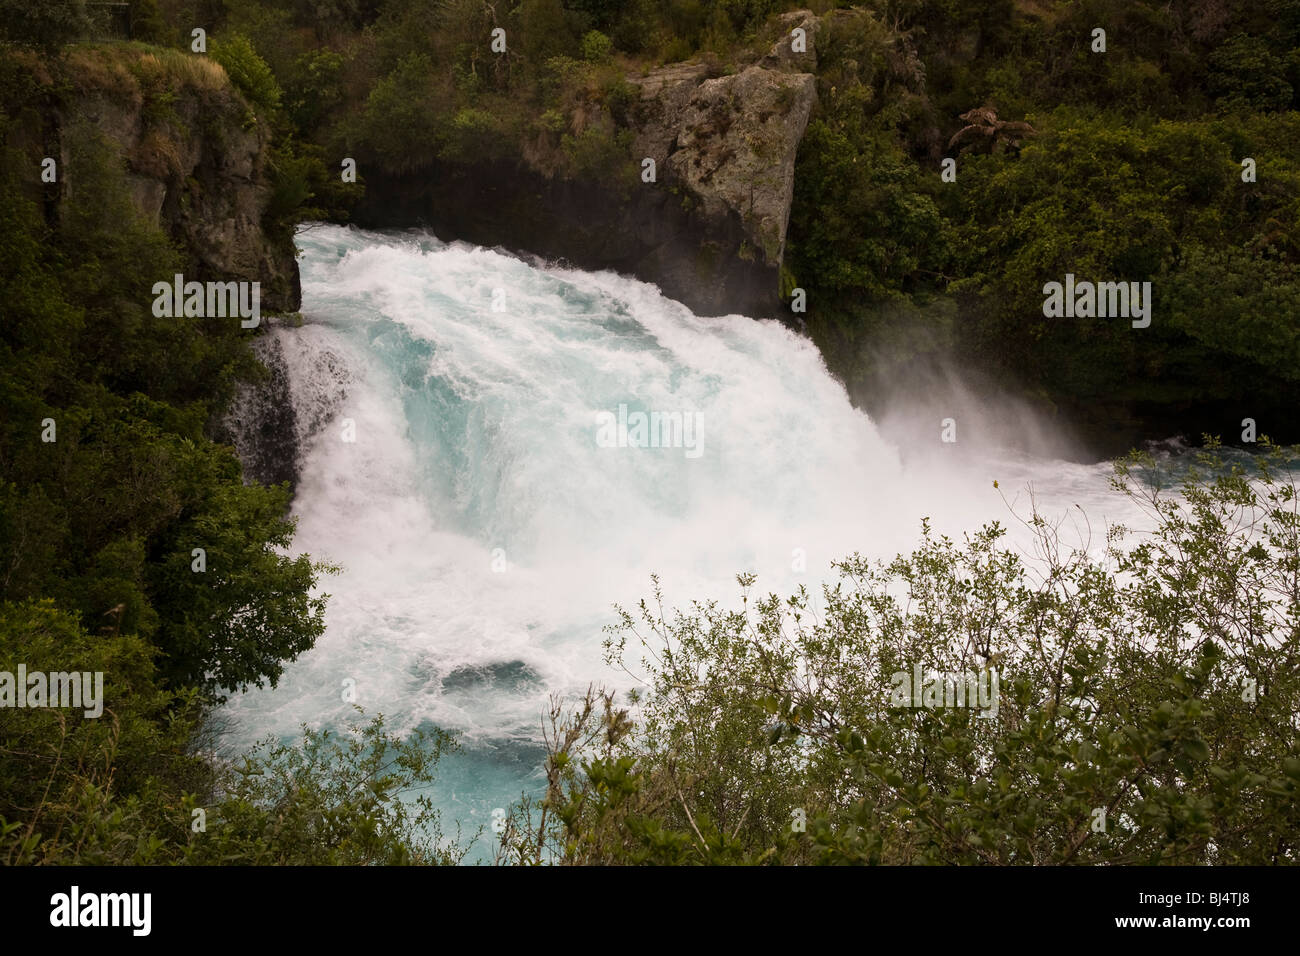 Just outside the town of Taupo the rushing Waikato River forms the famous Huka Falls New Zealand - Stock Image